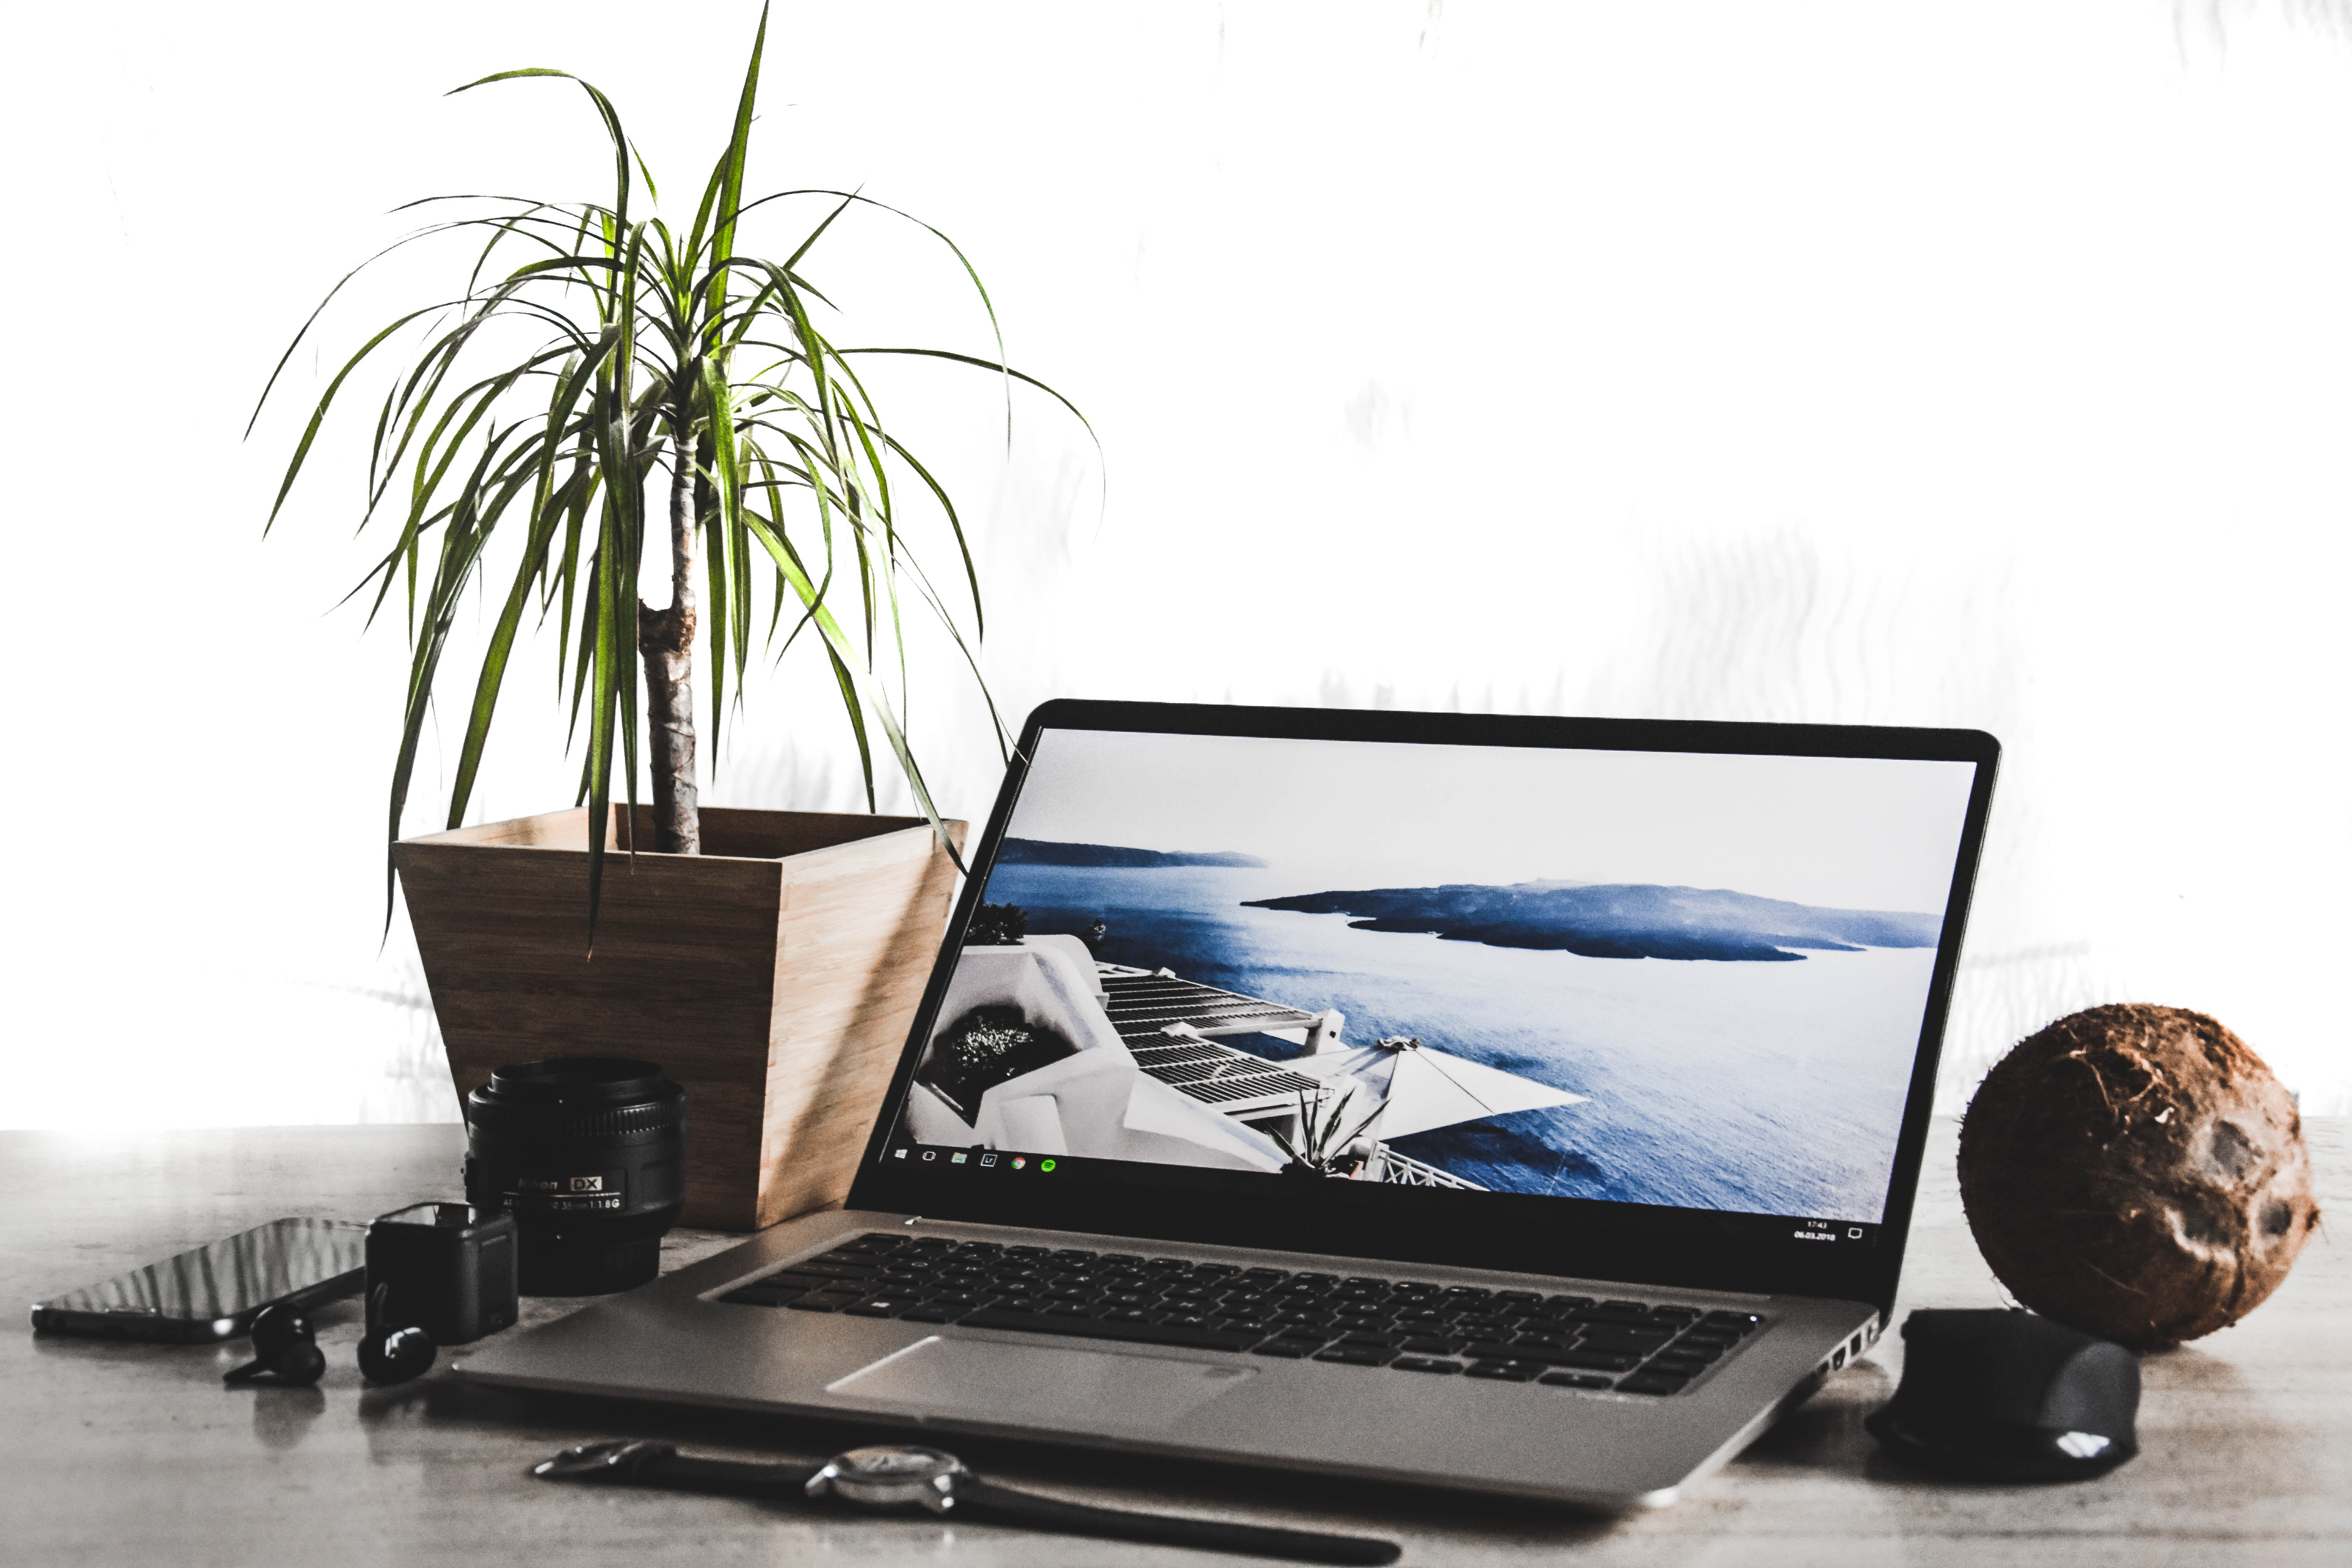 laptop computer beside potted plant